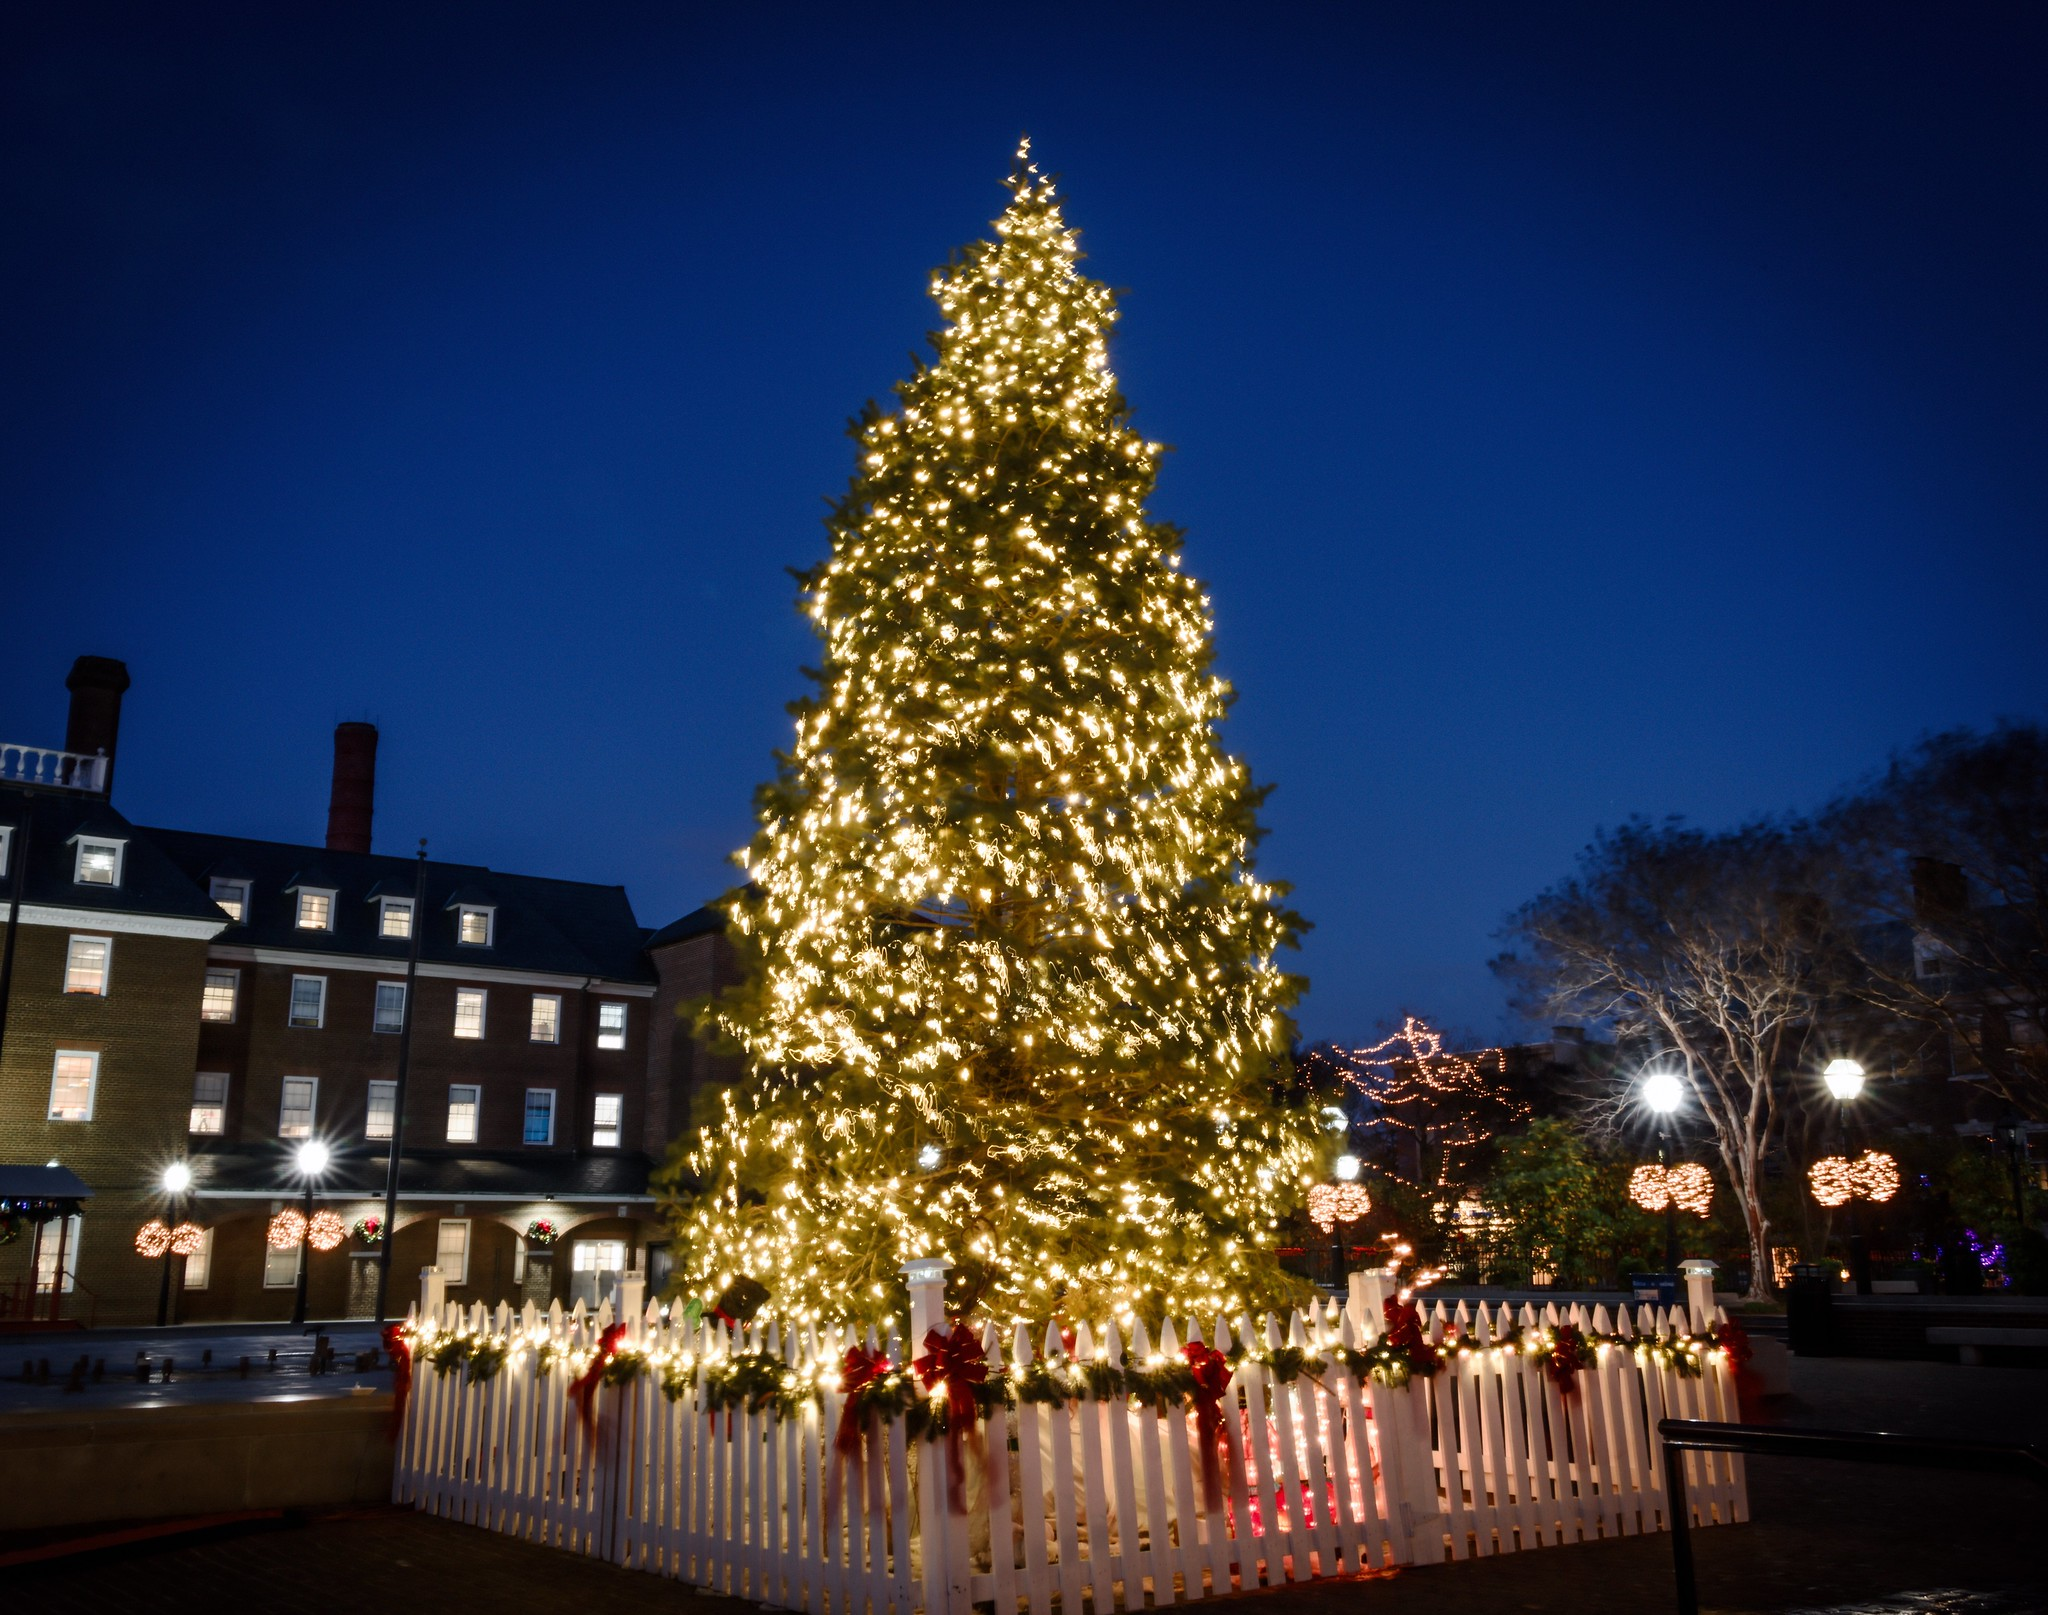 Silent Night, Windy Night